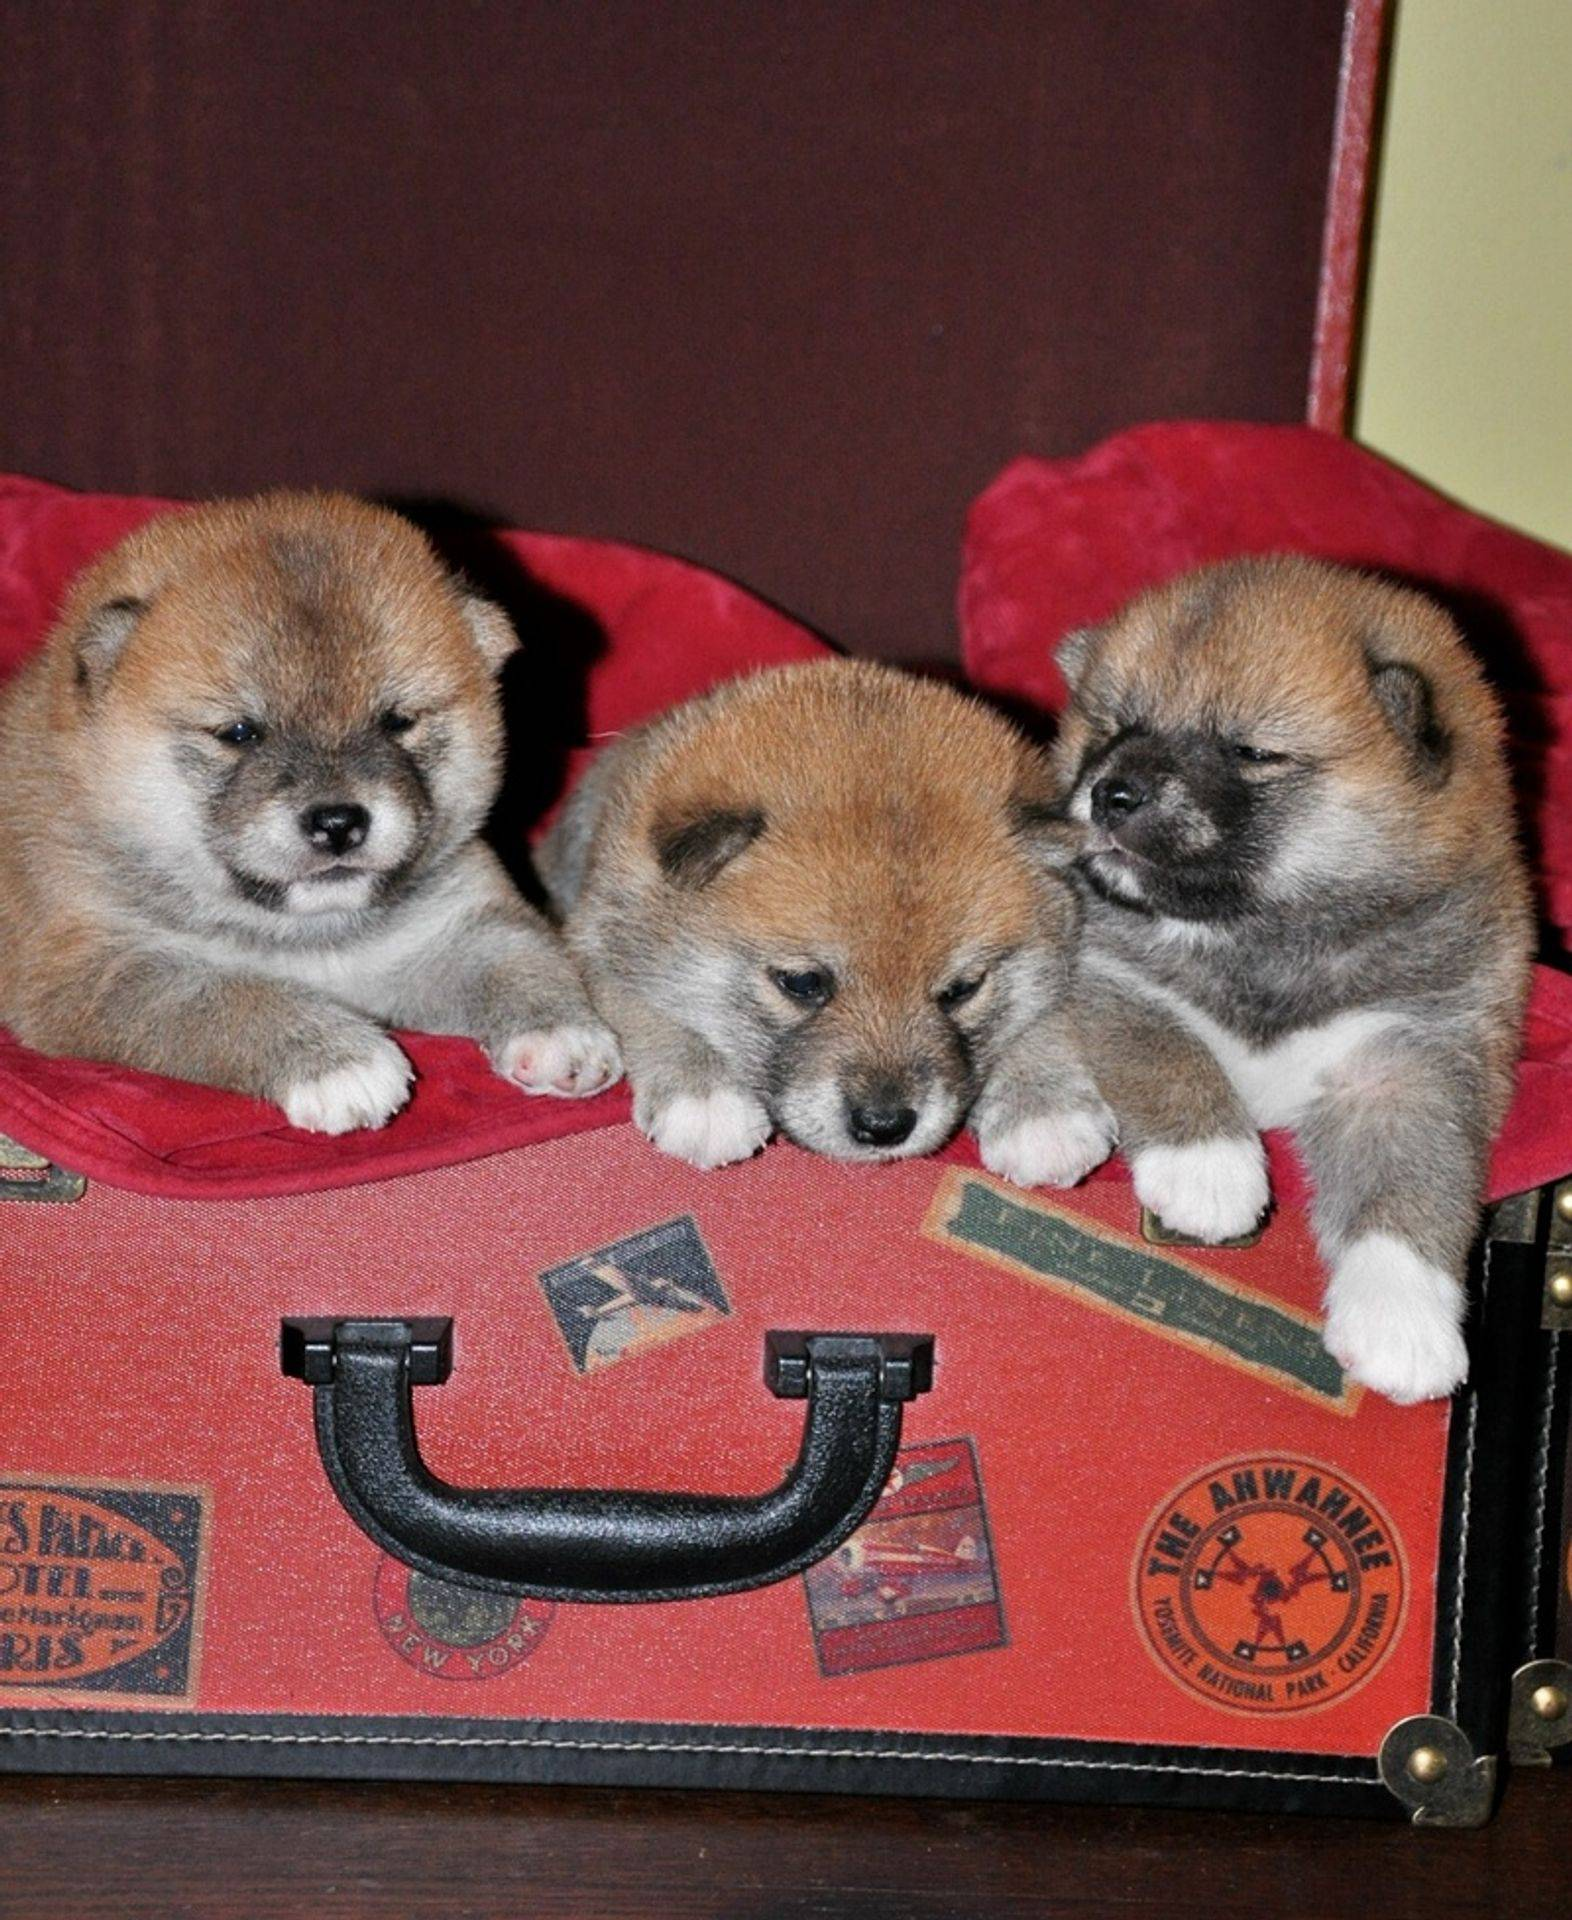 Shiba inu puppies lounging on the couch